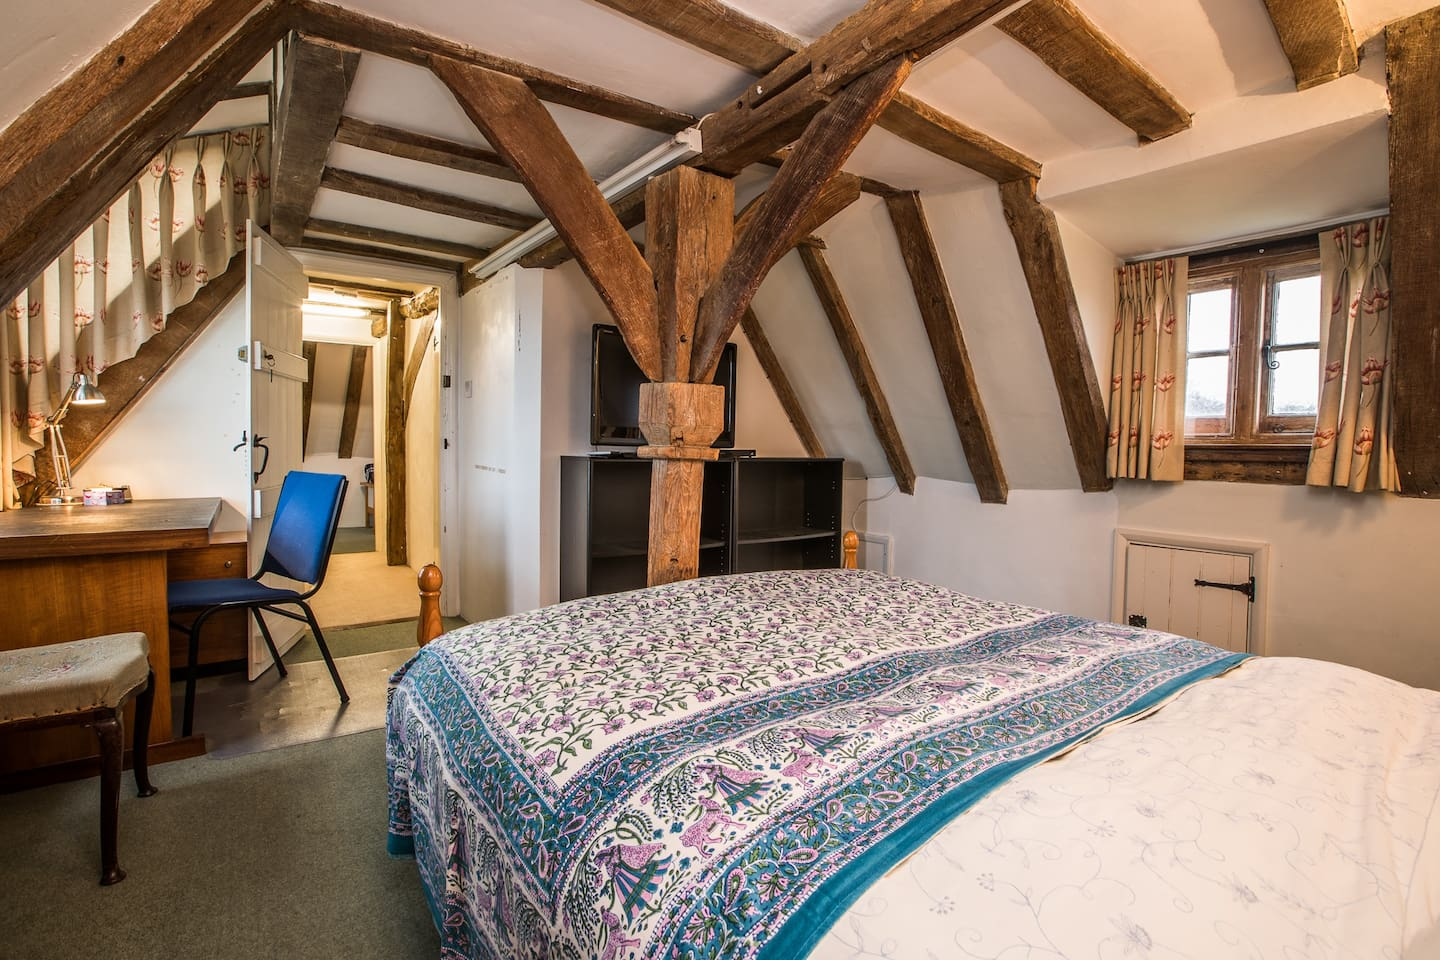 The bedroom with the historic 'king post' of the house; it dates from about 1500 and is a typical feature of timber framed houses in the region.